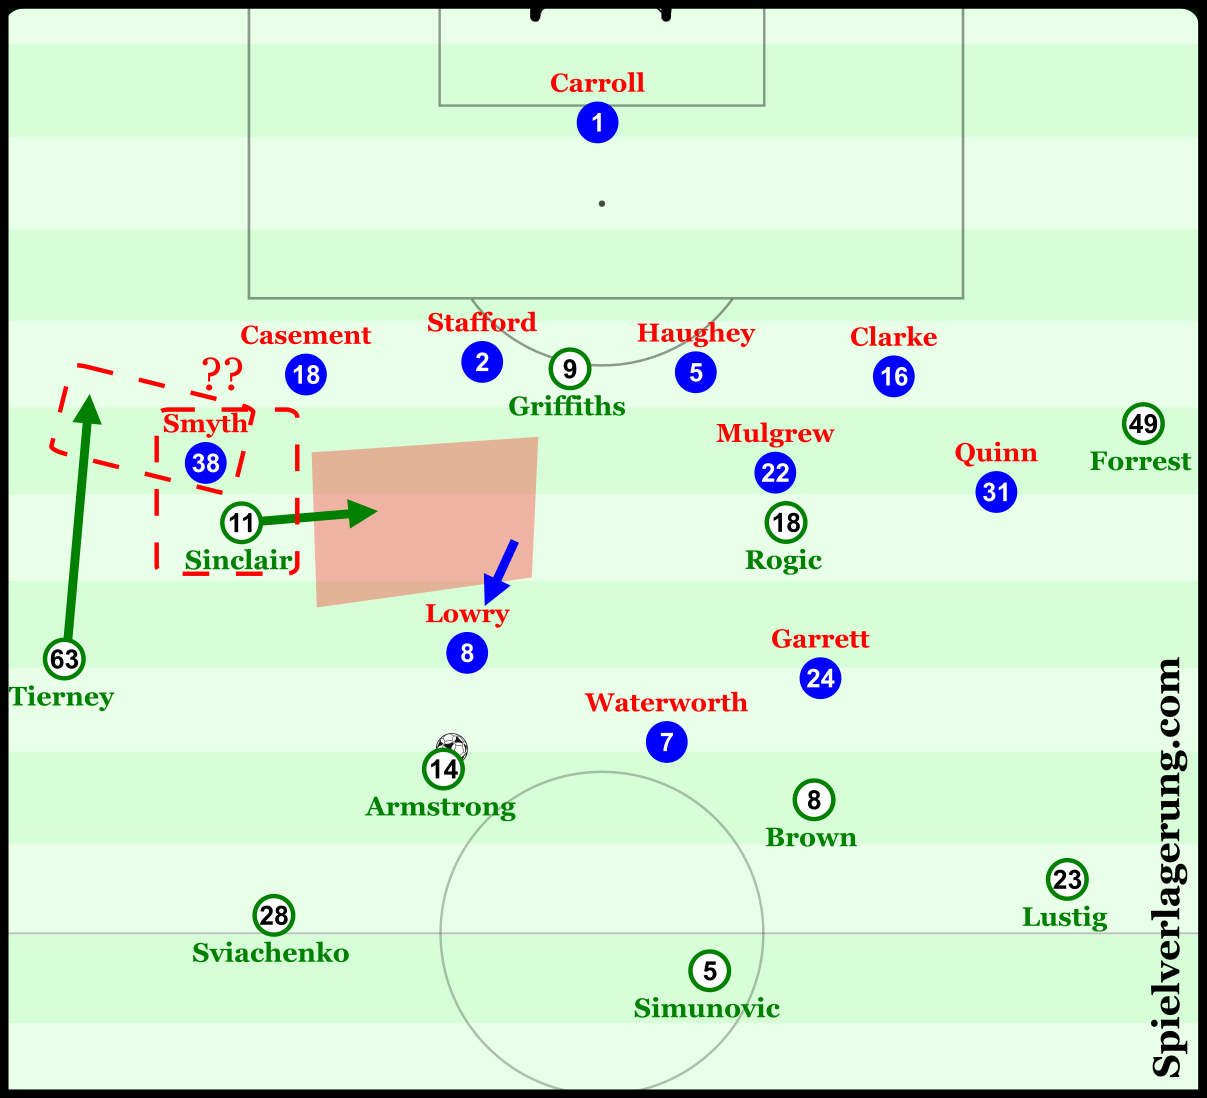 With good spacing and timing, Tierney's run could pin Smyth at the same time as Sinclair moves to occupy the space opened by Rogic. From here, a deeper Armstrong (himself drawing out Lowry) could either find Sinclair directly in this space, or indirectly with a layoff from a teammate.